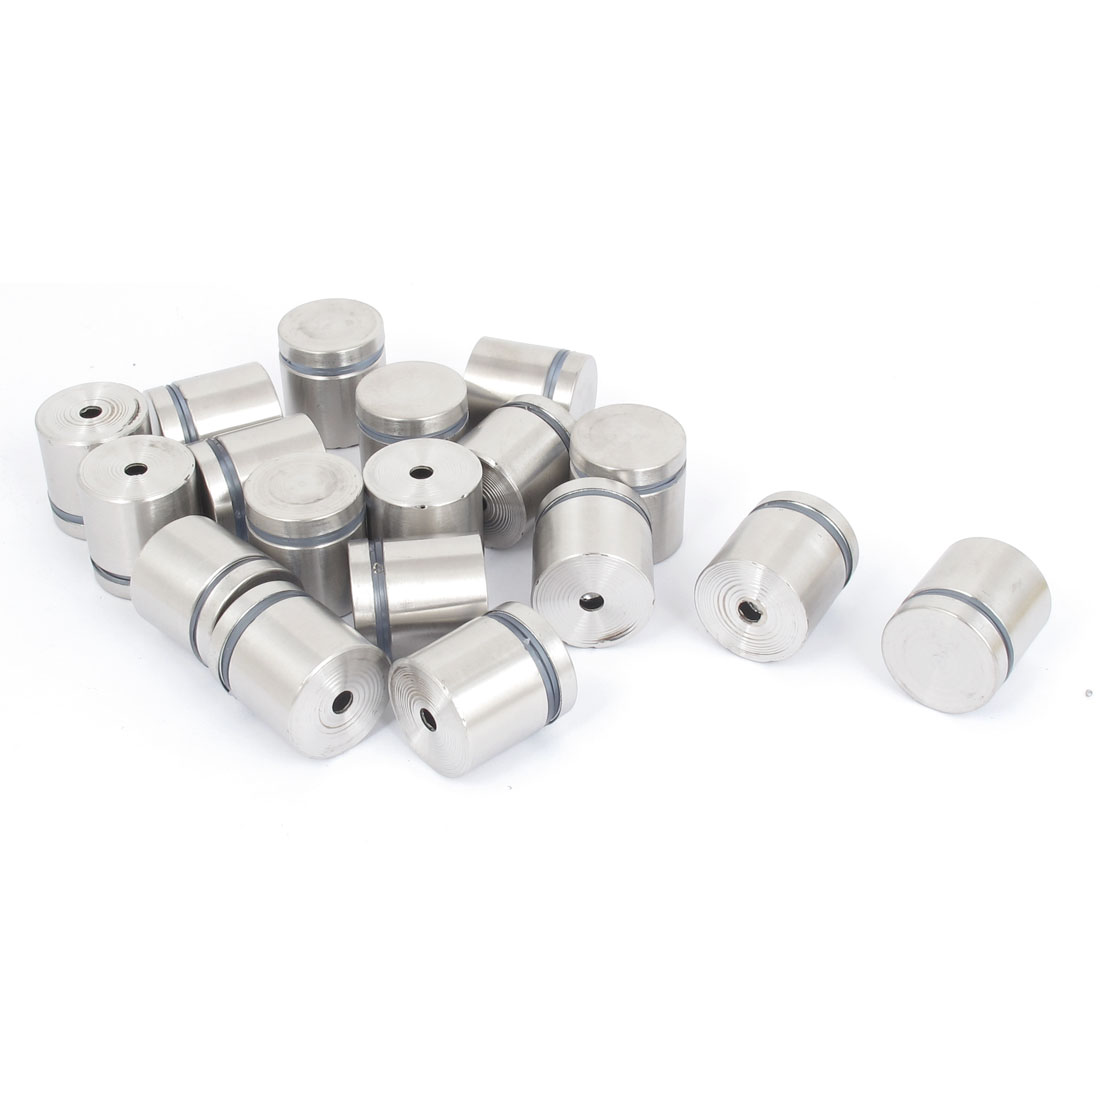 25mm x 25mm Stainless Steel Advertising Frameless Glass Standoff Pins 18pcs